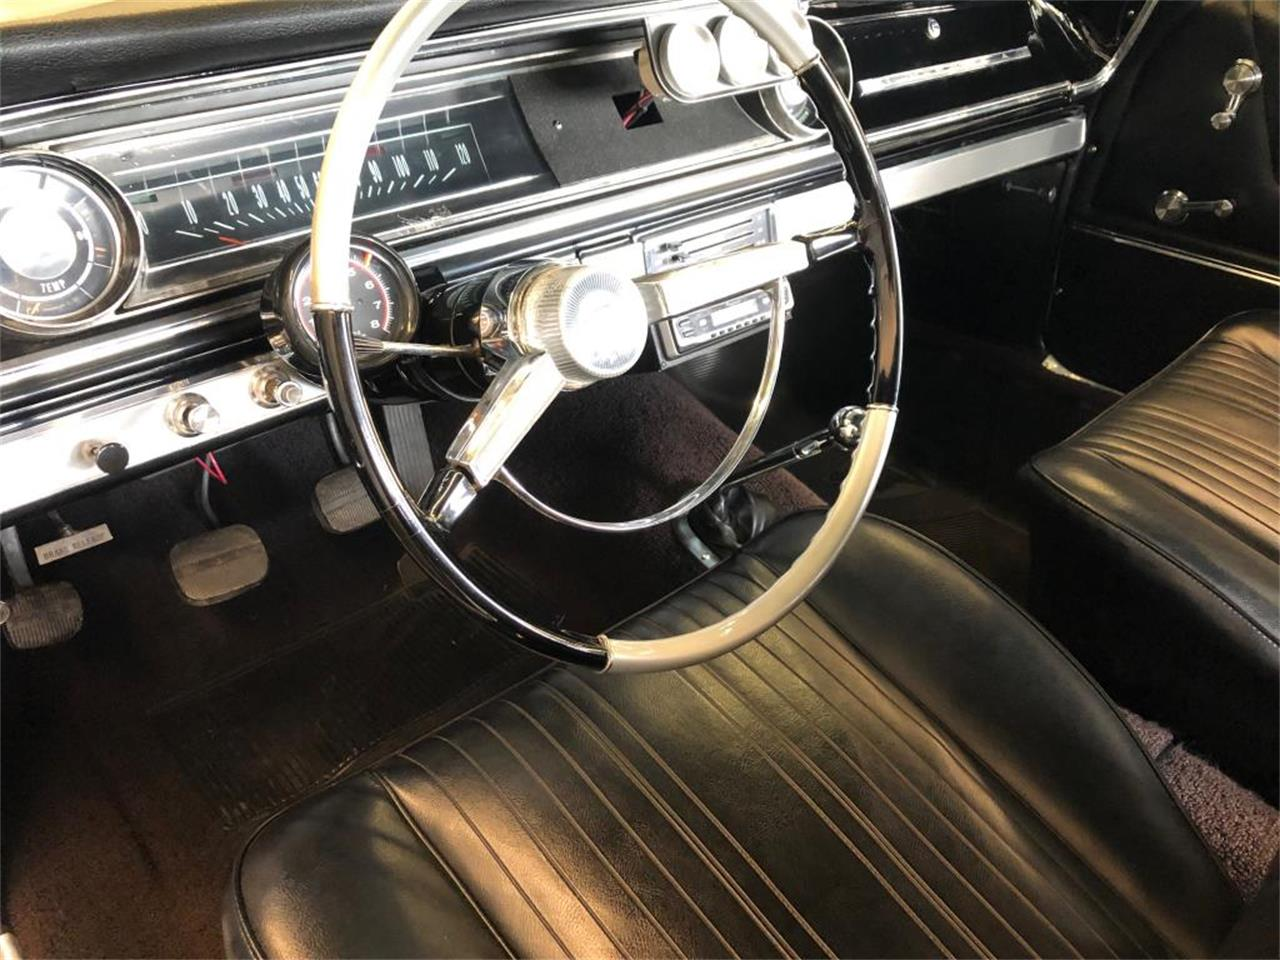 Large Picture of '65 Chevrolet Impala located in Milford City Connecticut - $34,000.00 - Q47Y